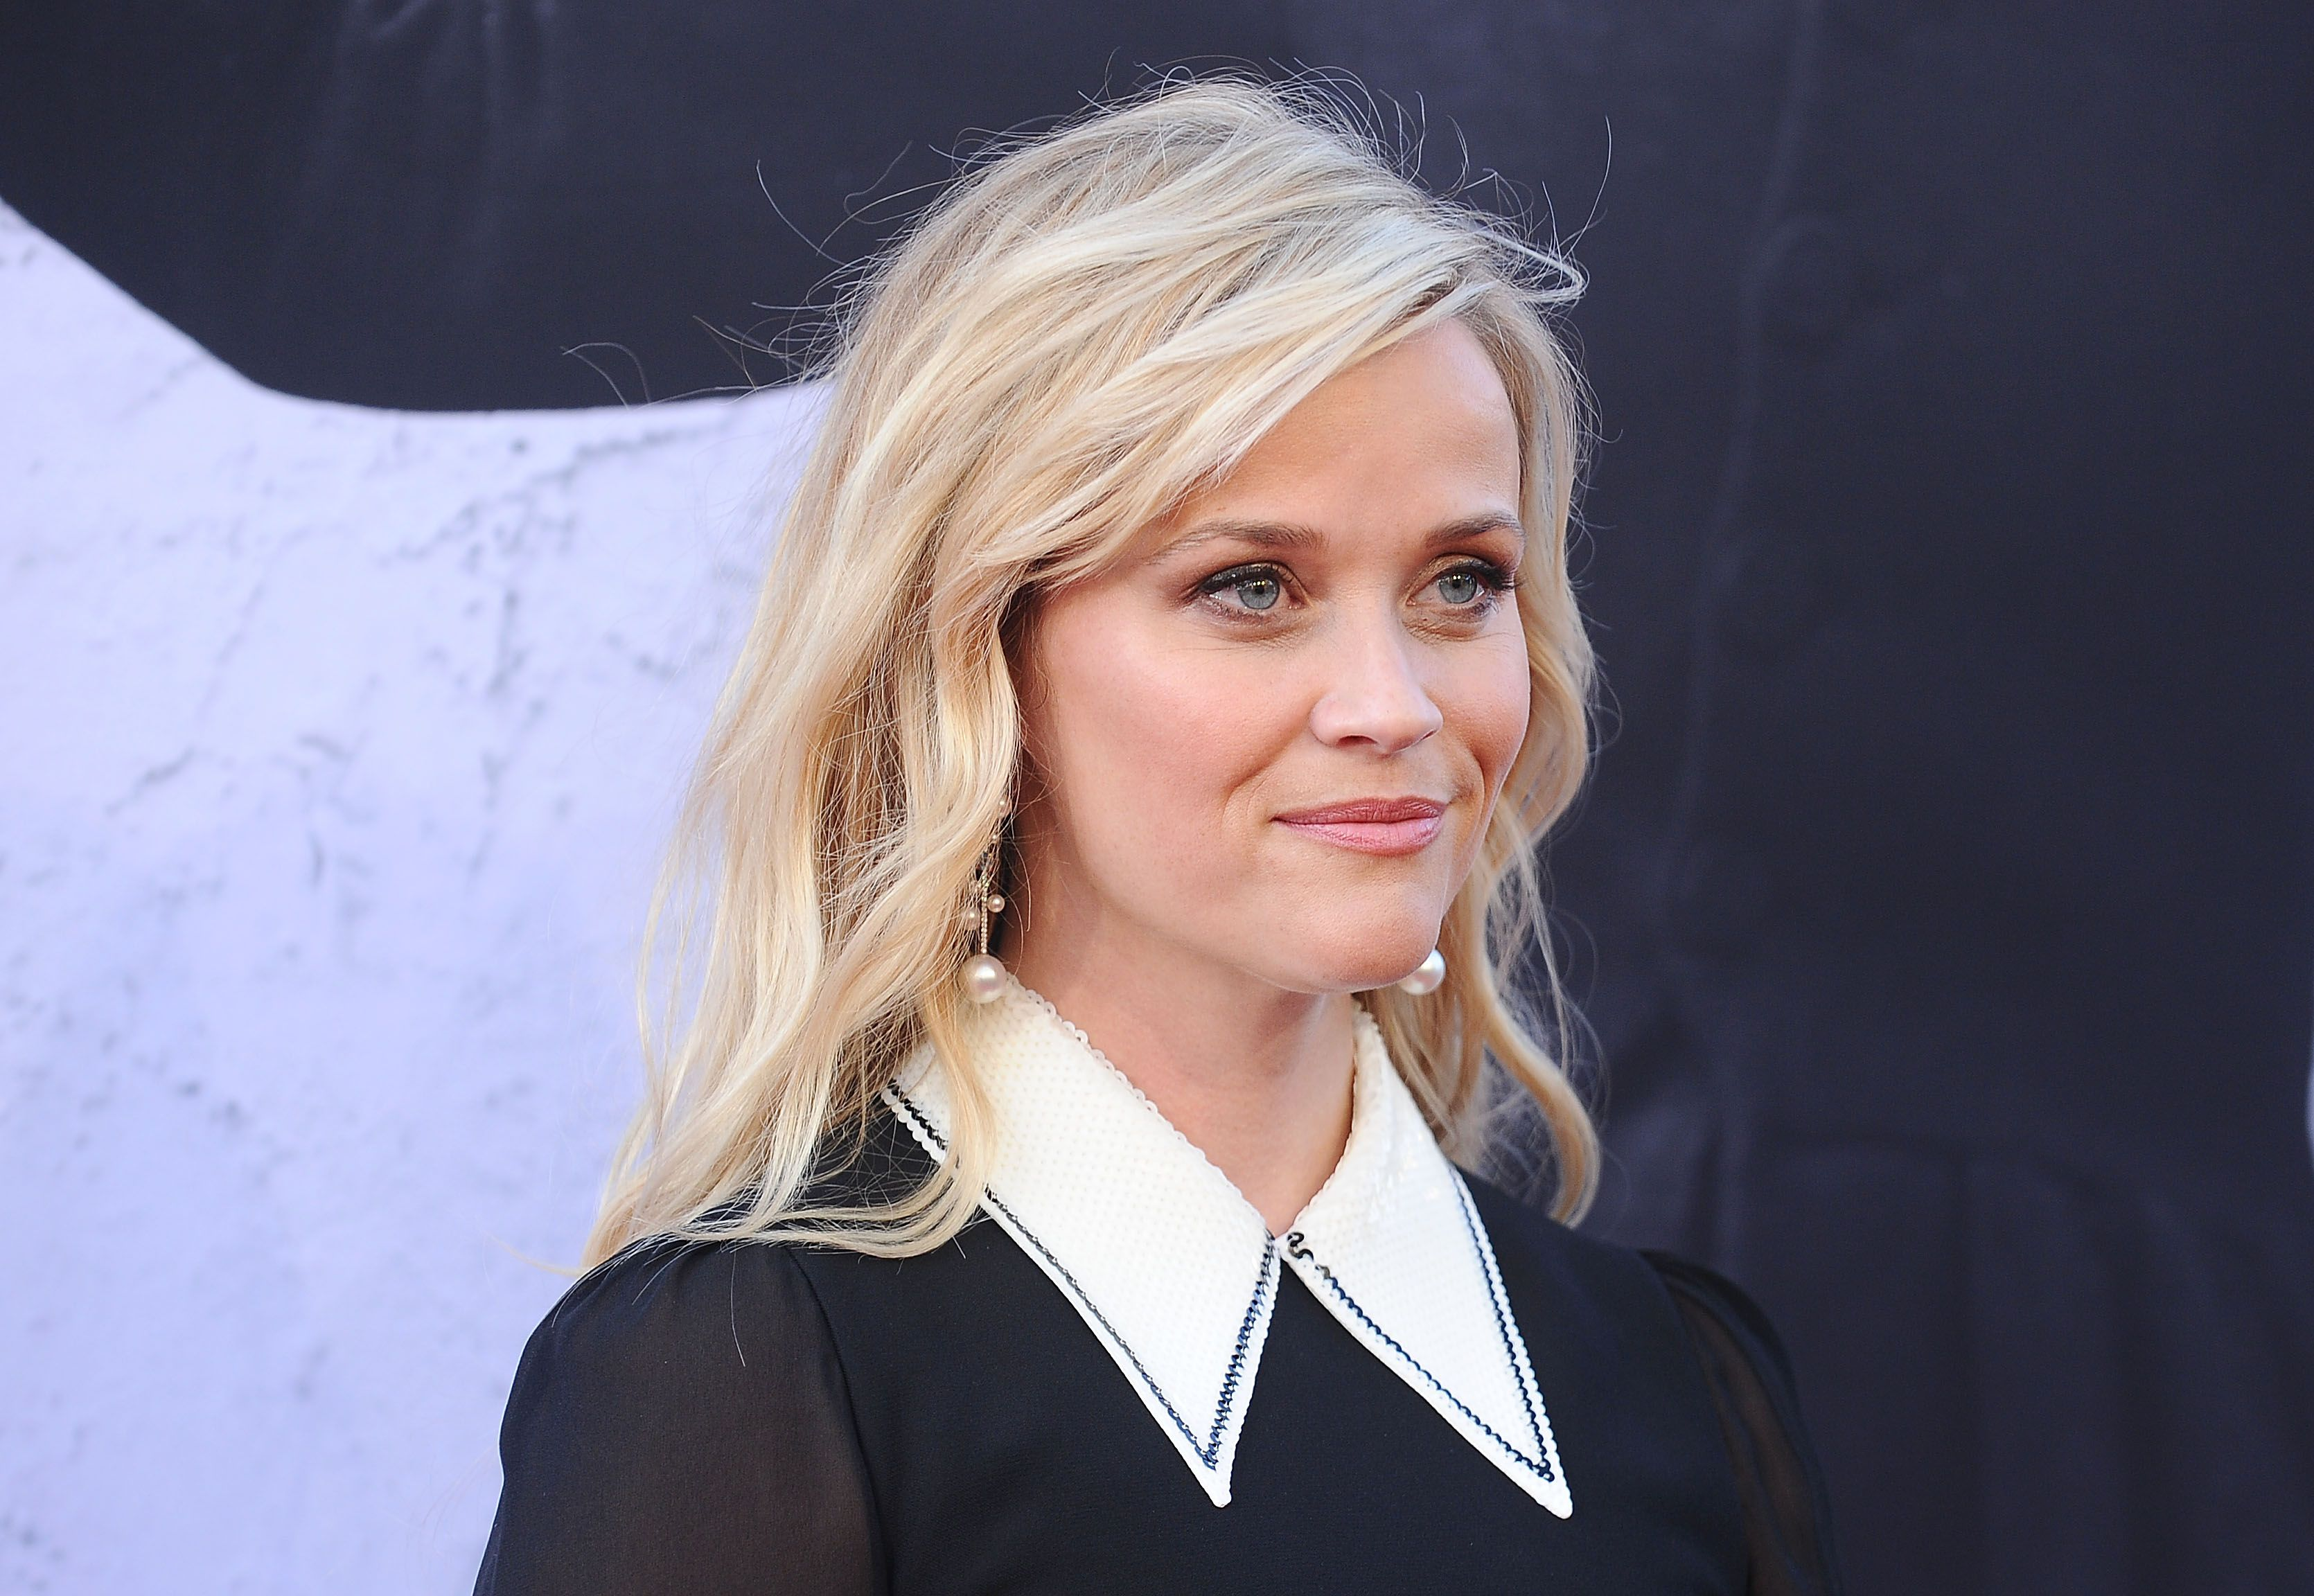 Reese Witherspoon Responds To Rumors That Shes Pregnant With Her Fourth Child